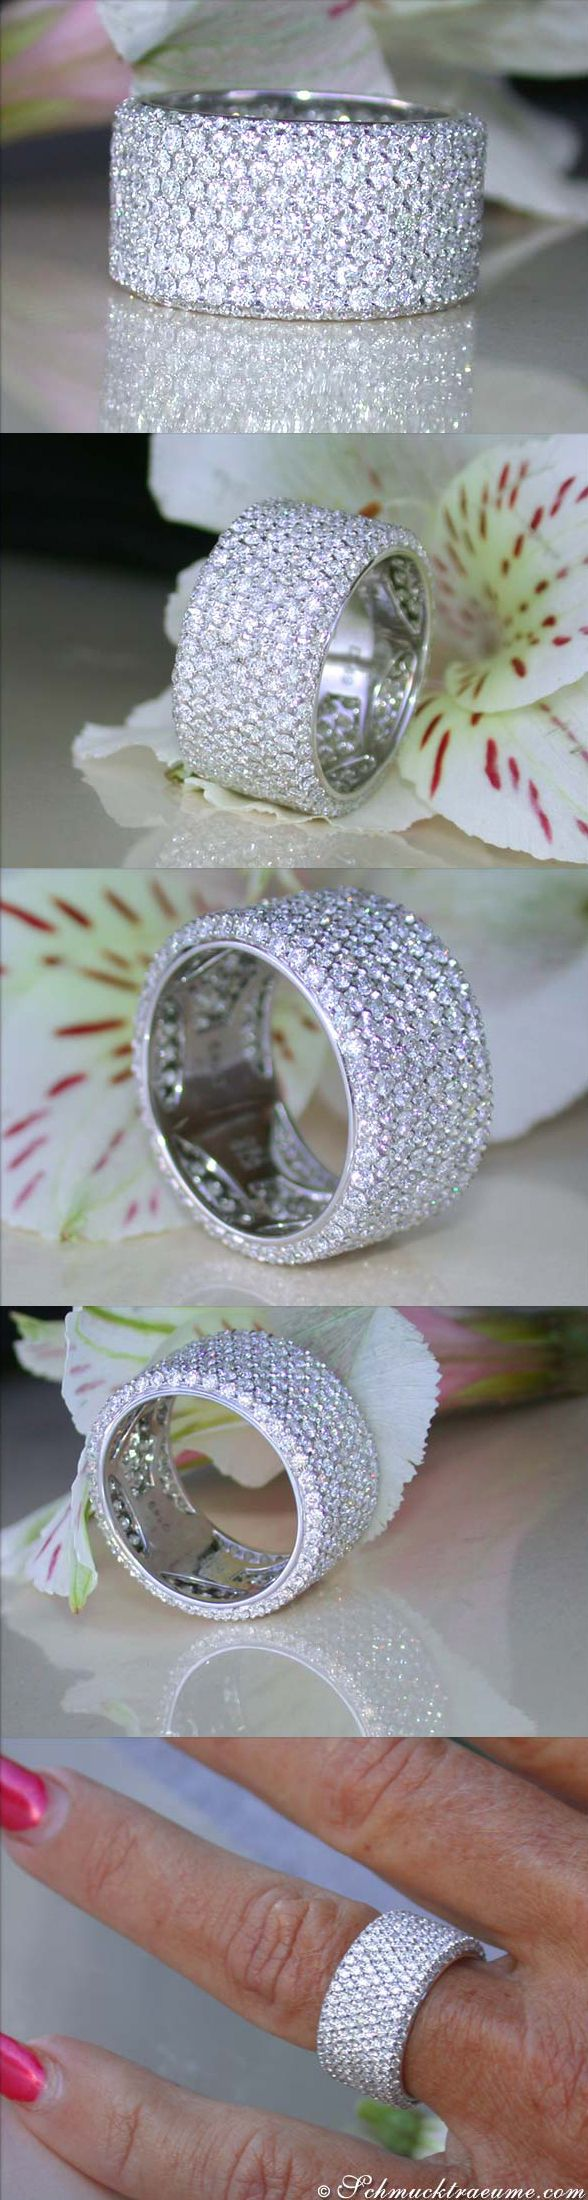 Amazing Diamond Eternity Ring, 4,49 cts. g-si WG18K - schmucktraeume.com - Like: https://www.facebook.com/pages/Noble-Juwelen/150871984924926